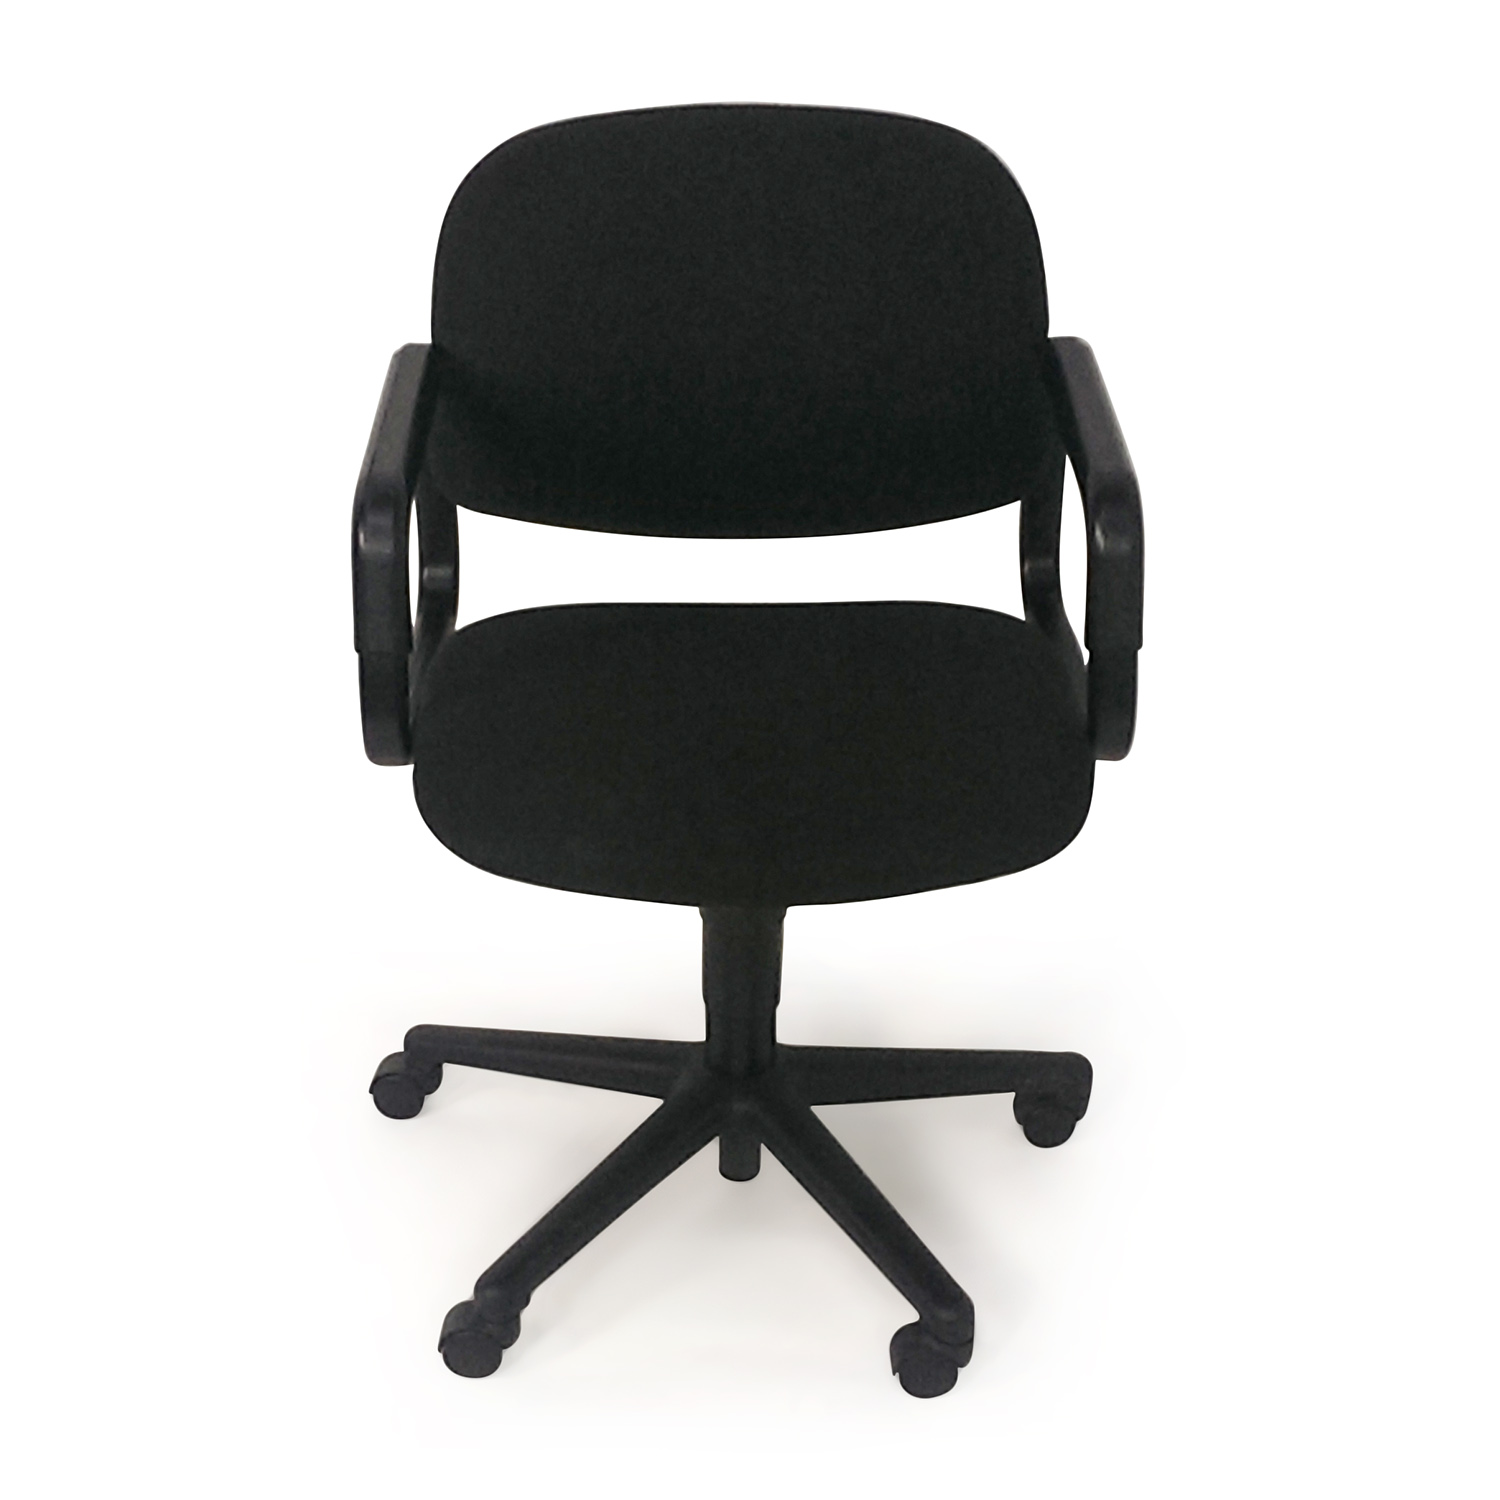 54% OFF Black Leather Conference Room Chair Chairs